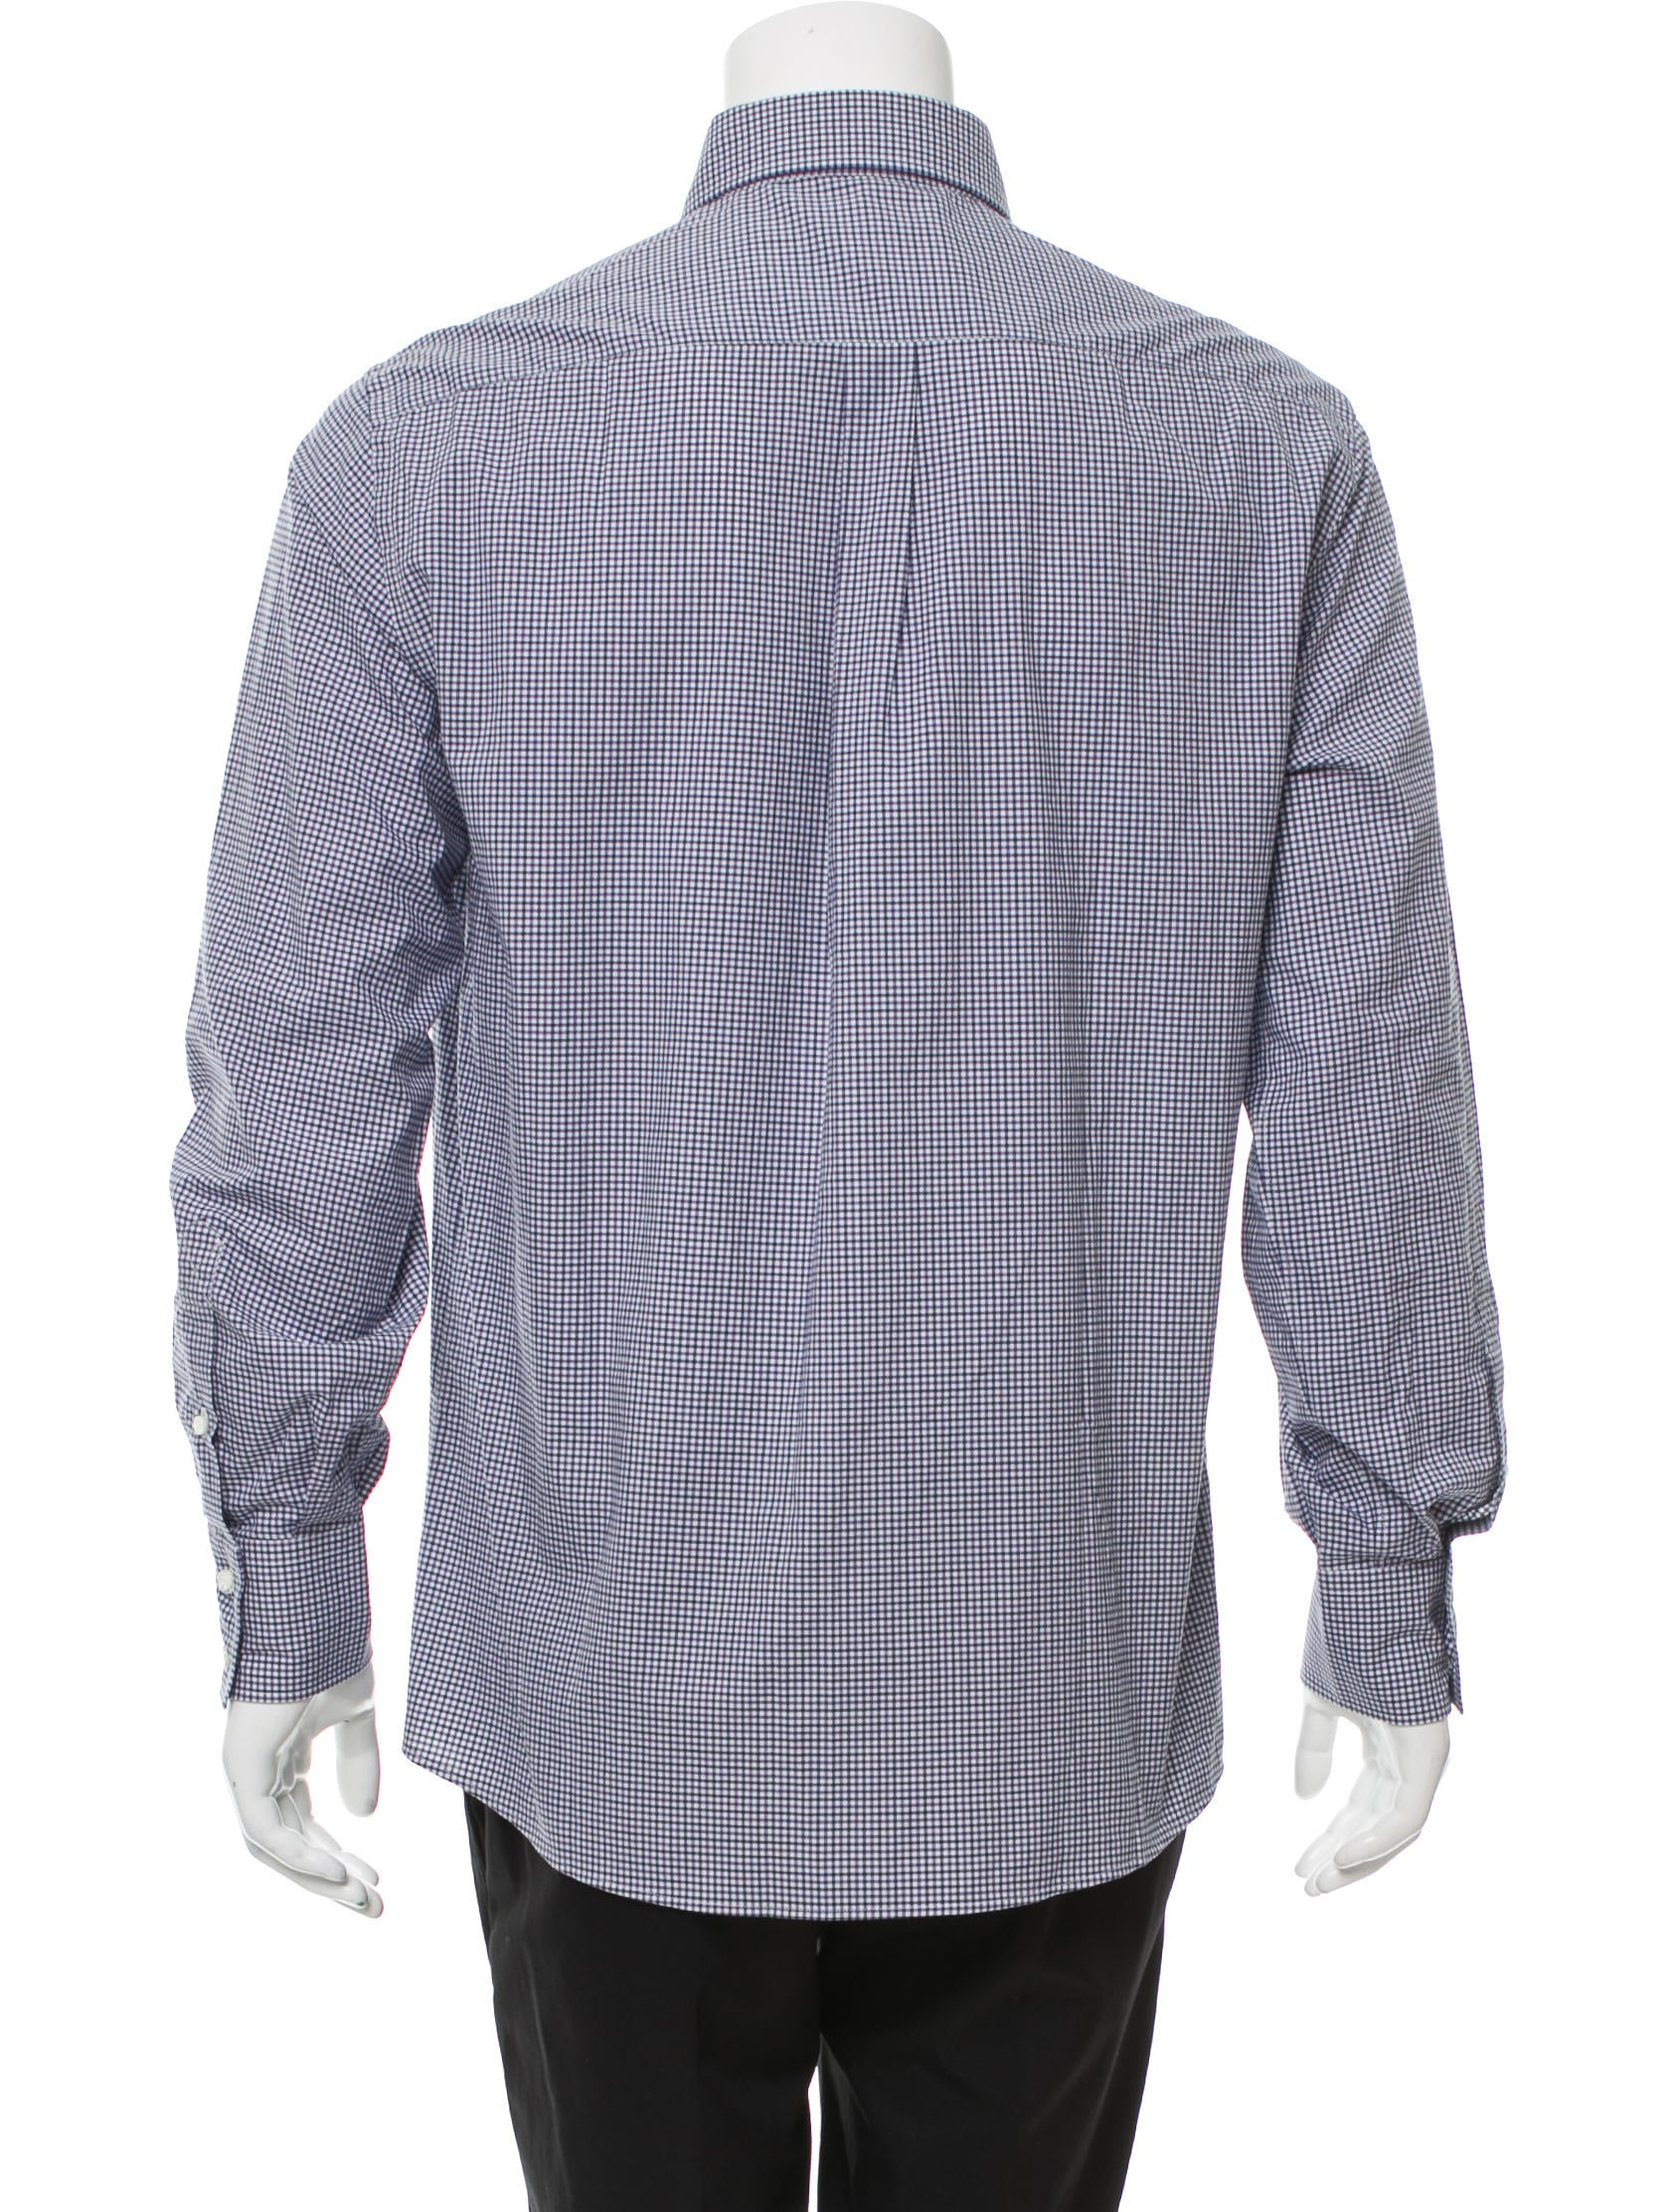 Brunello cucinelli gingham button up shirt w tags for Men s purple gingham shirt